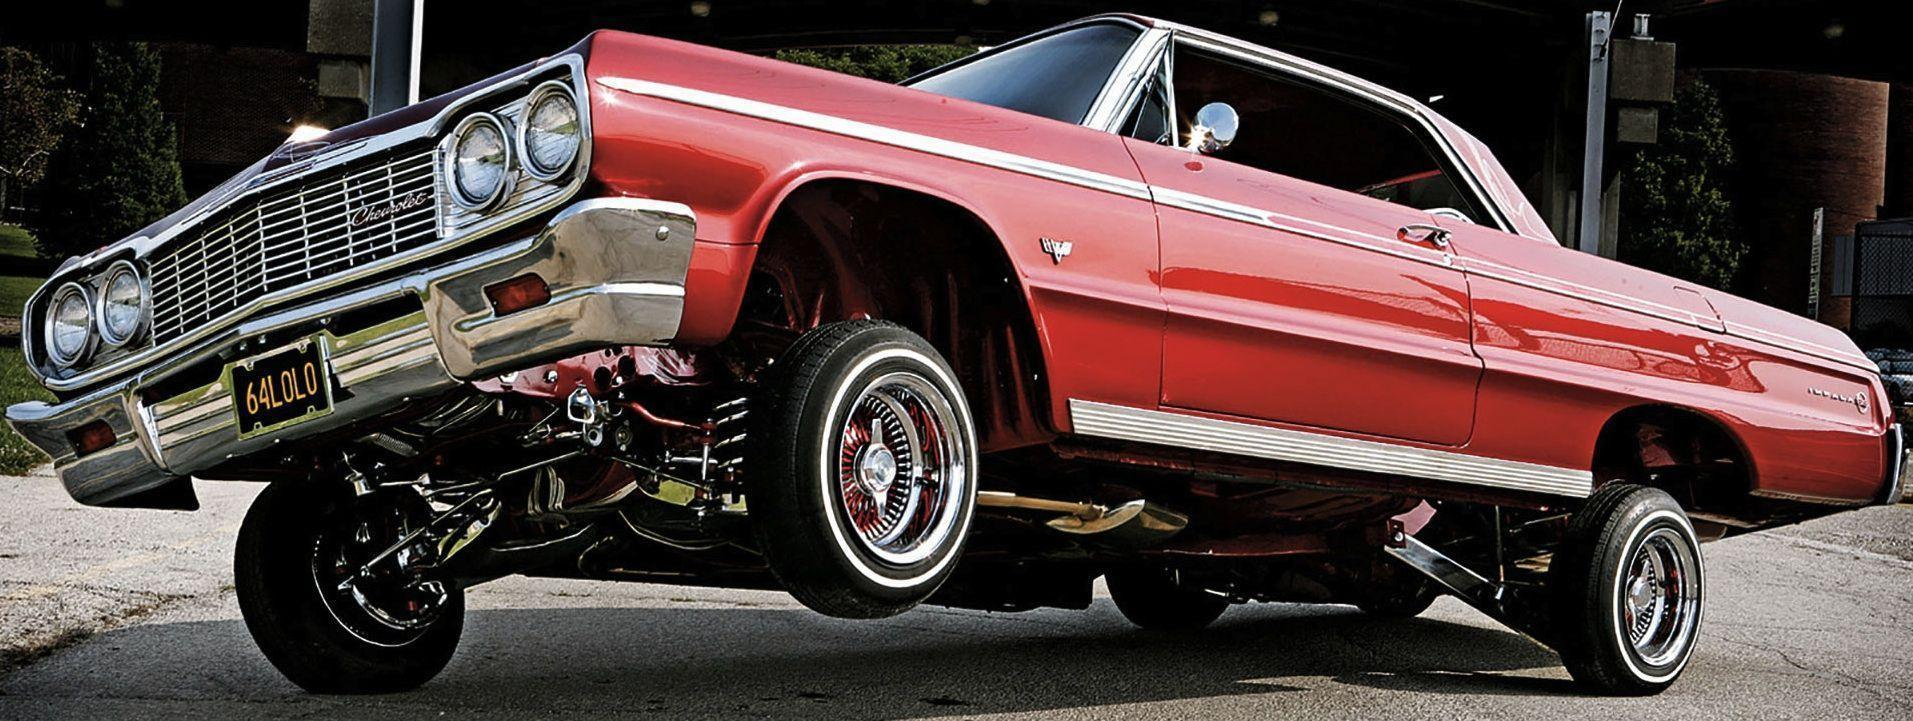 Animals For > 1964 Chevy Impala Lowrider Wallpaper